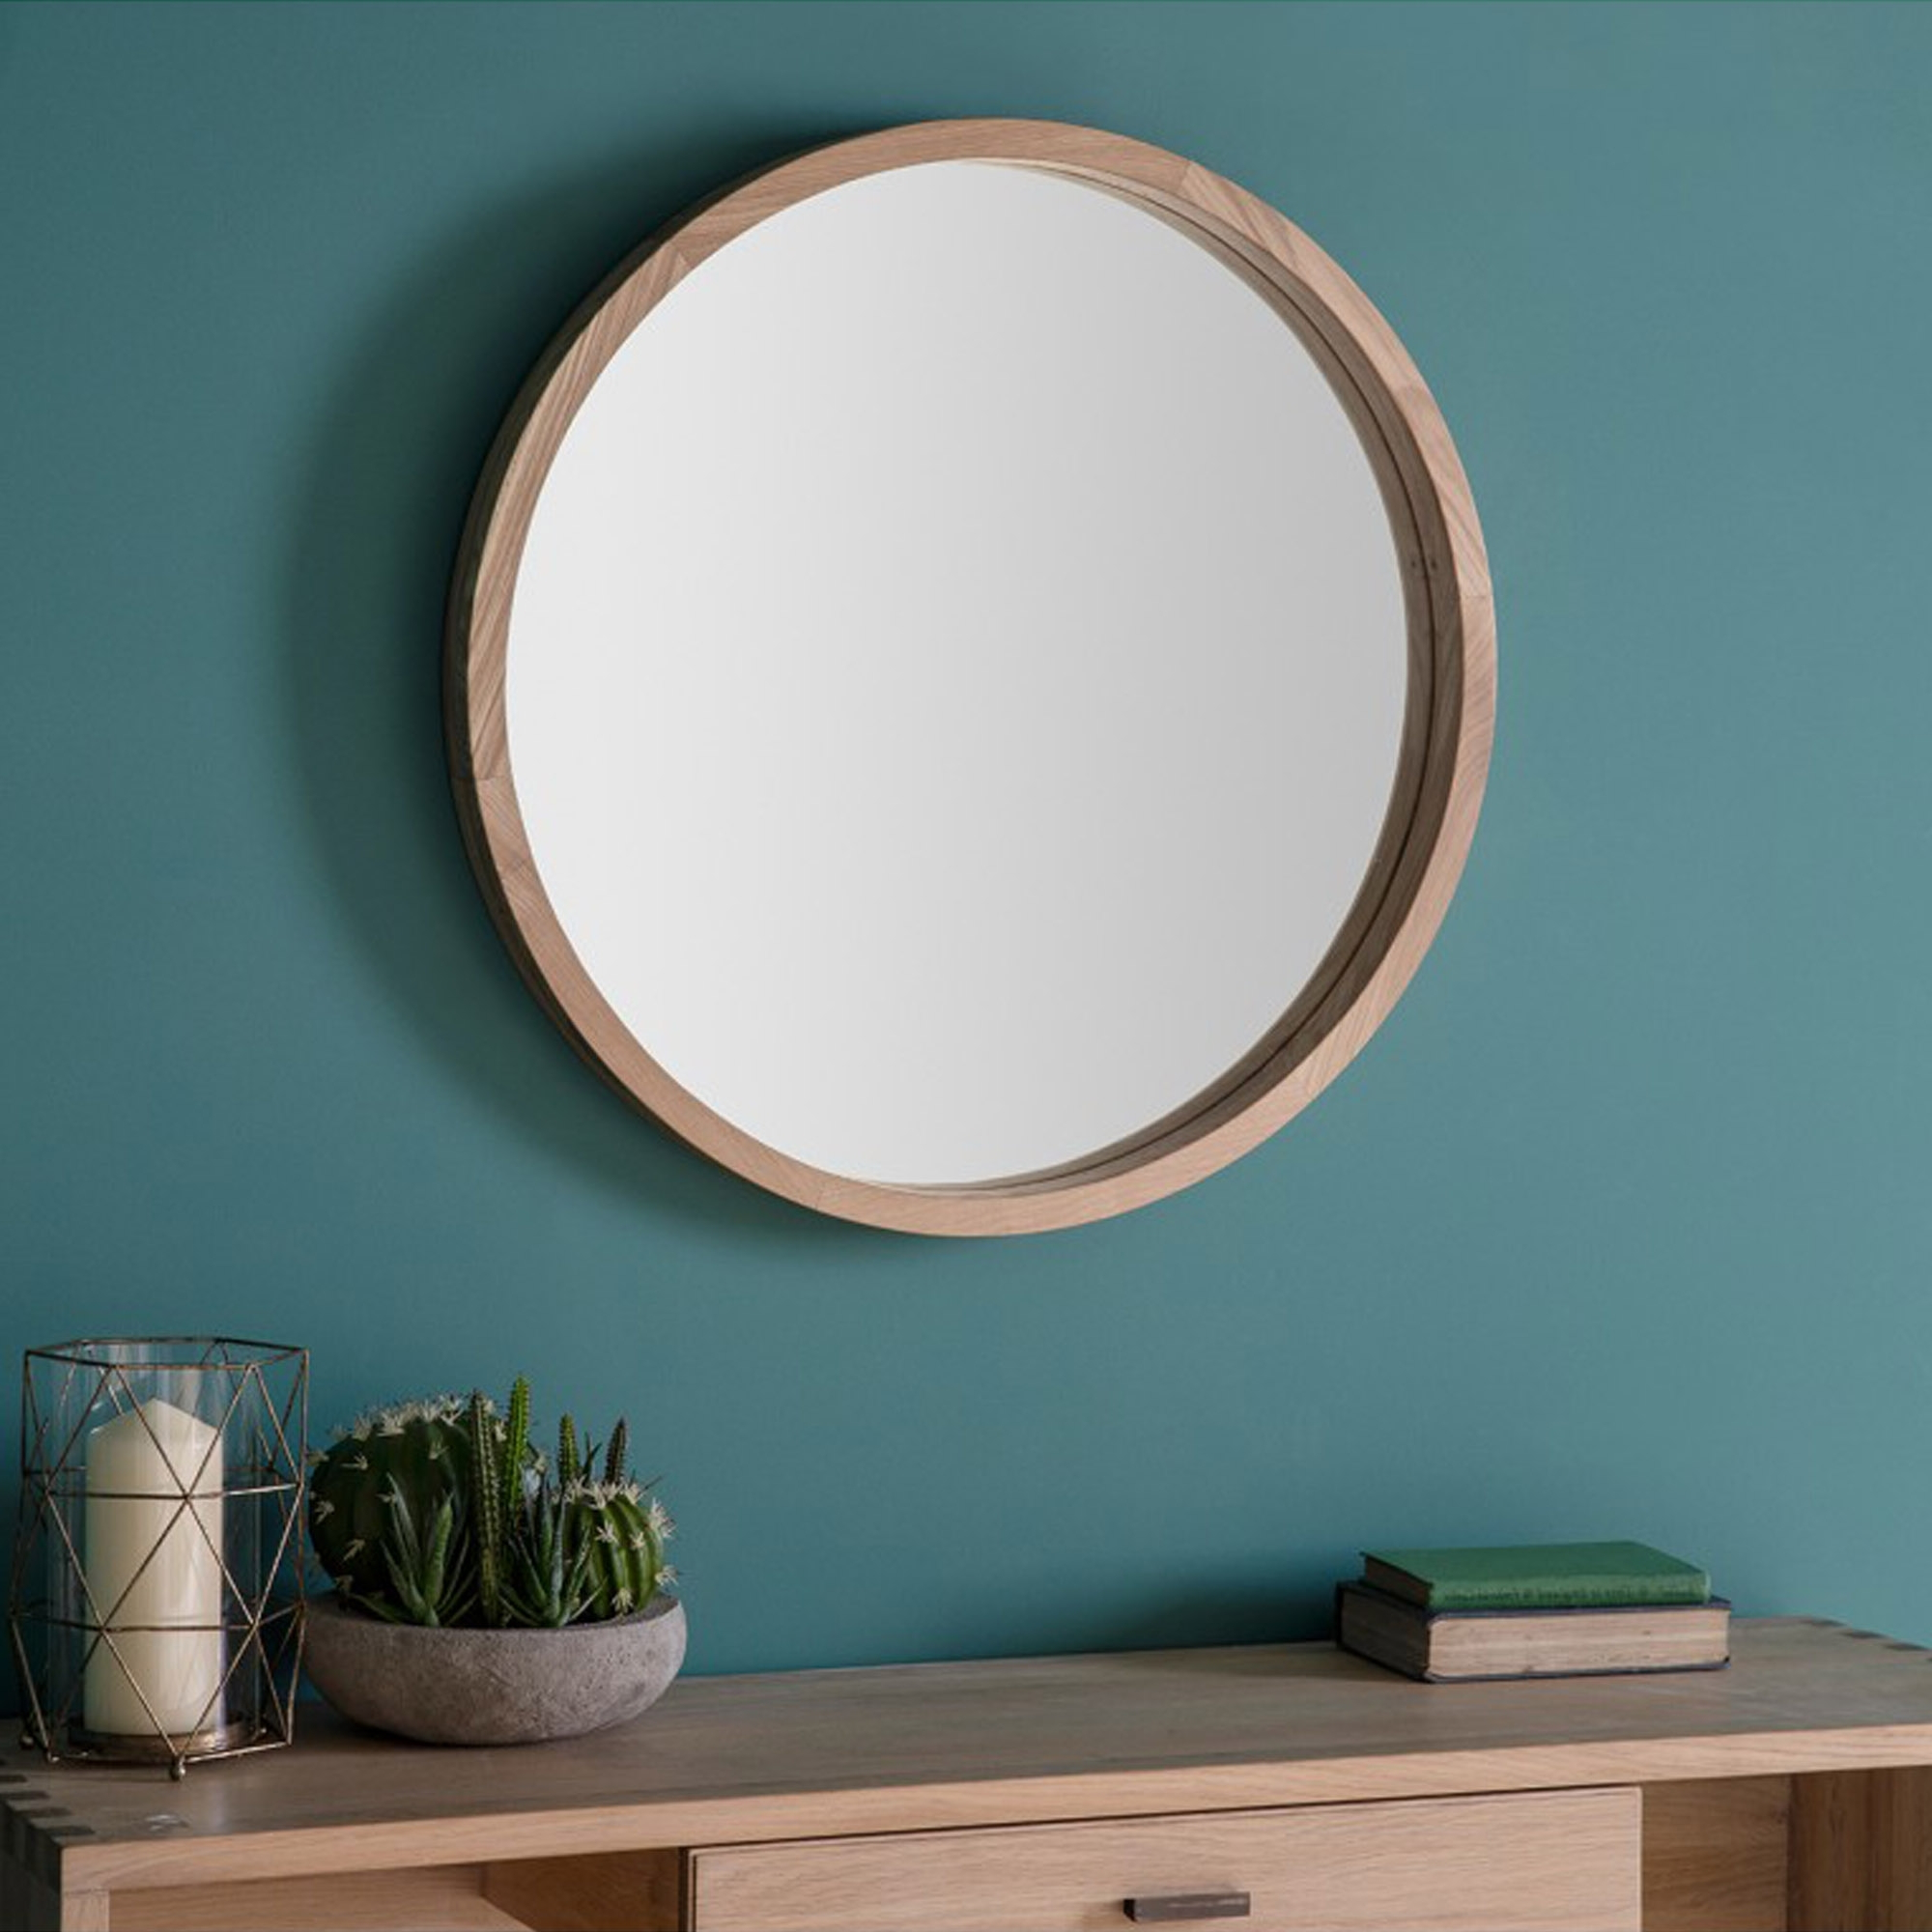 Small Round Wall Mirrors Within Recent Bowman Small Round Wall Mirror (Gallery 1 of 20)